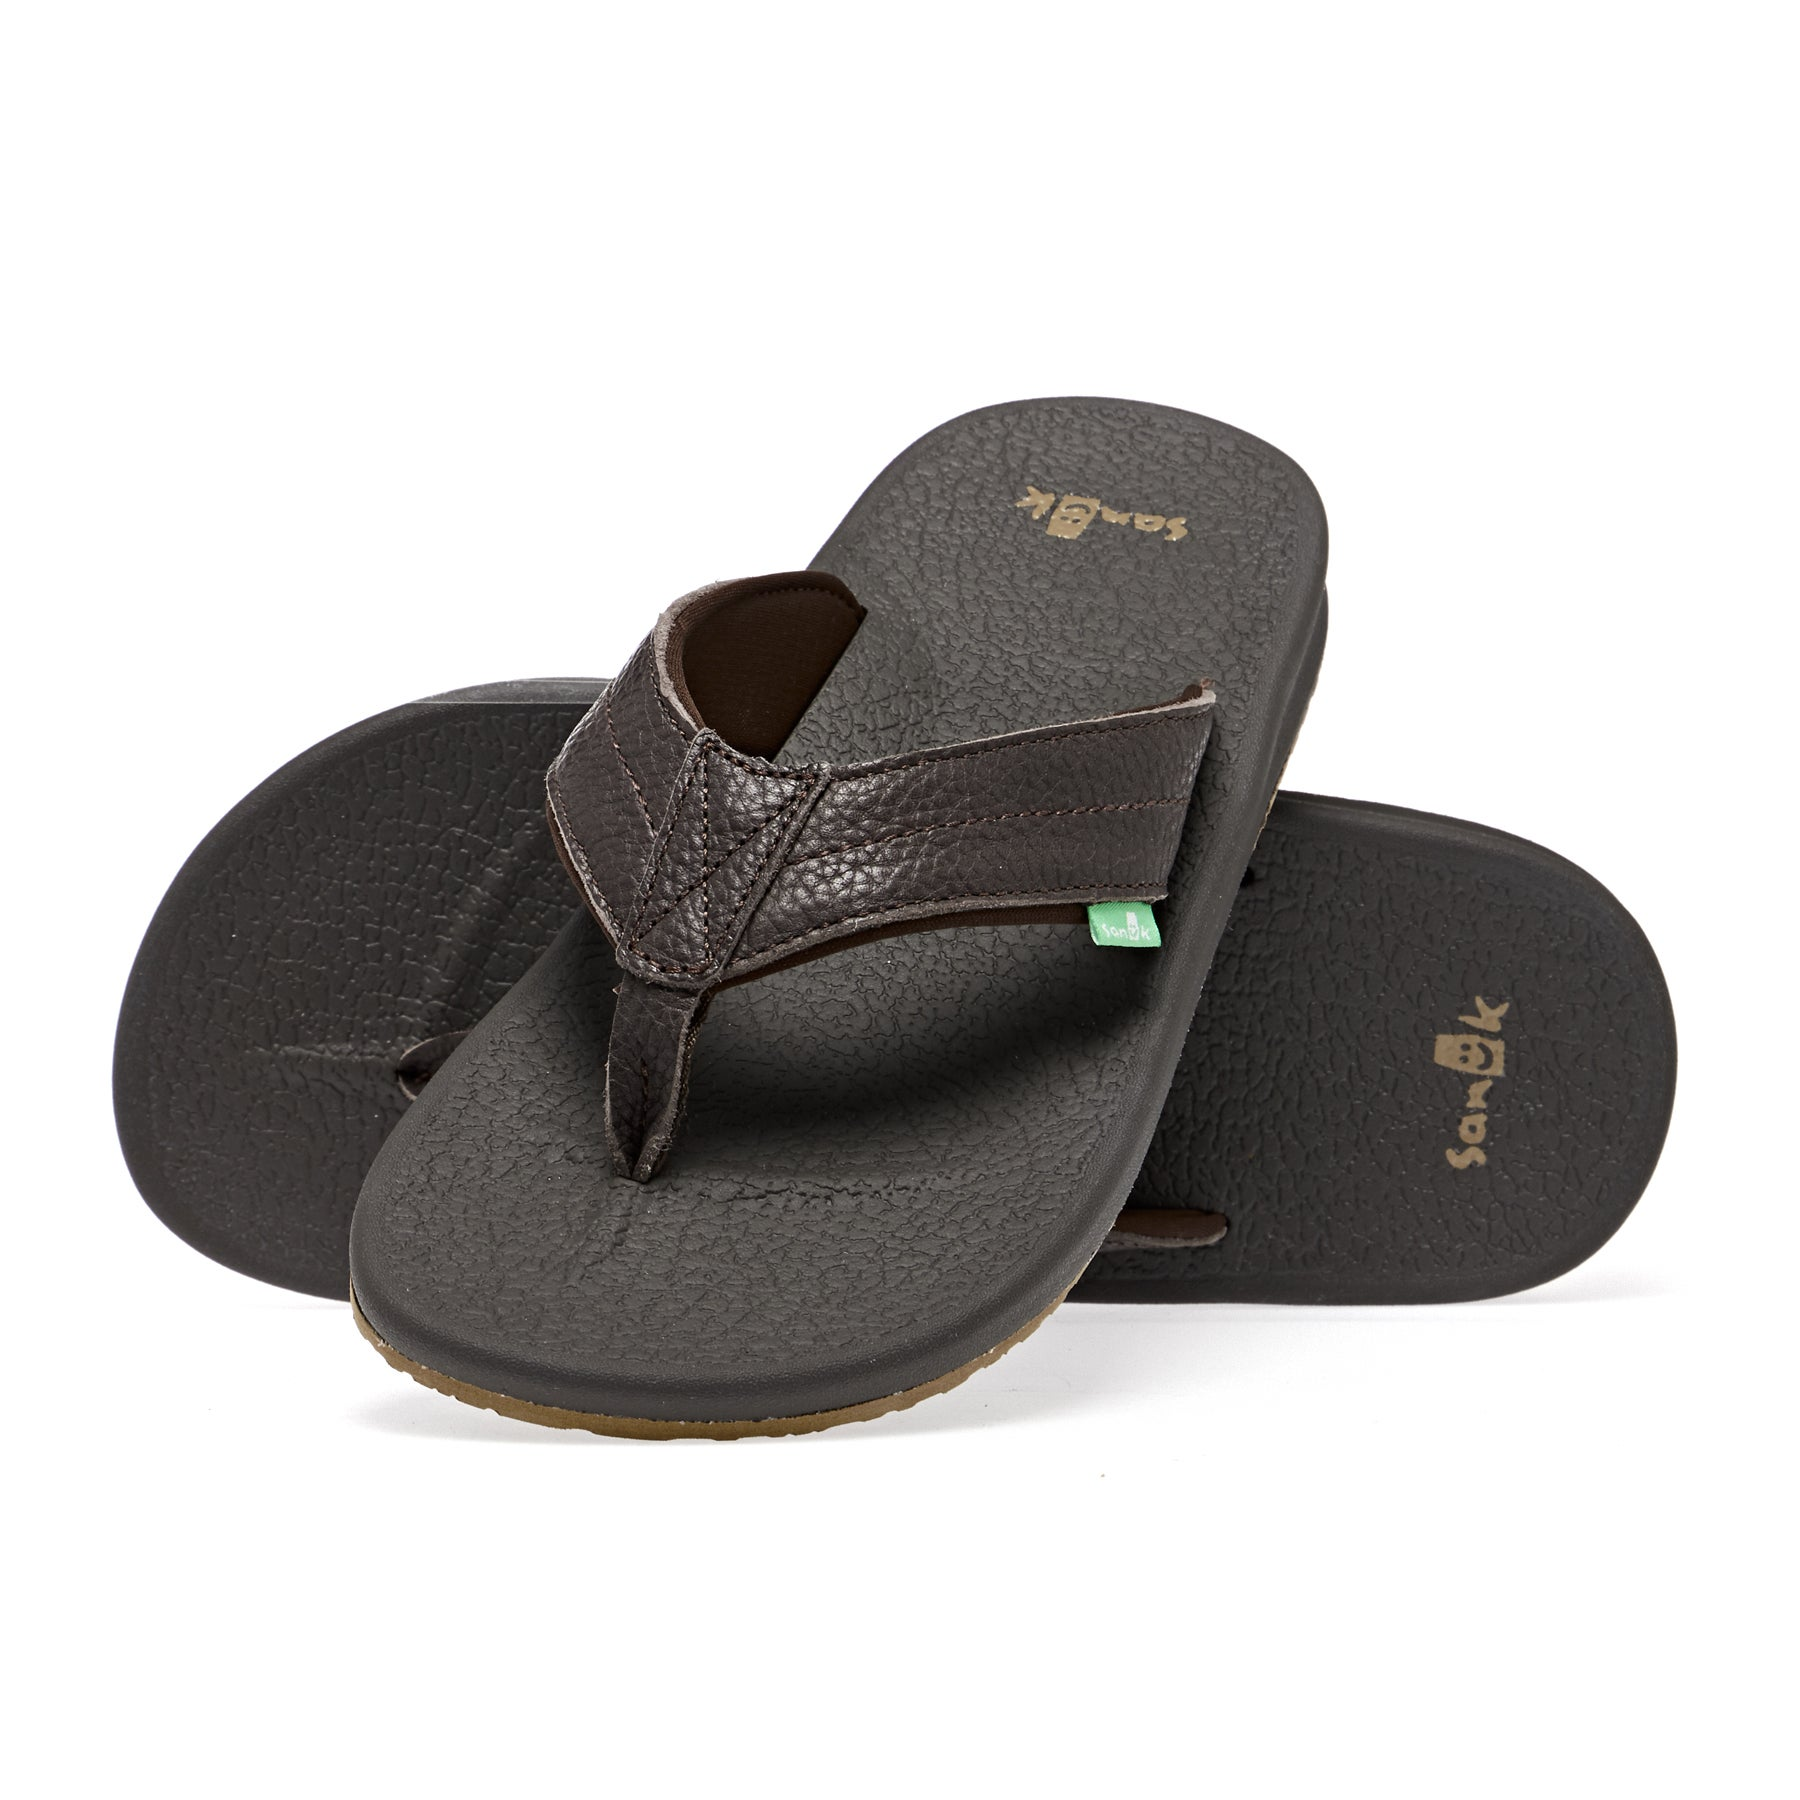 Sanuk Brumeister Primo Sandals - Dark Brown